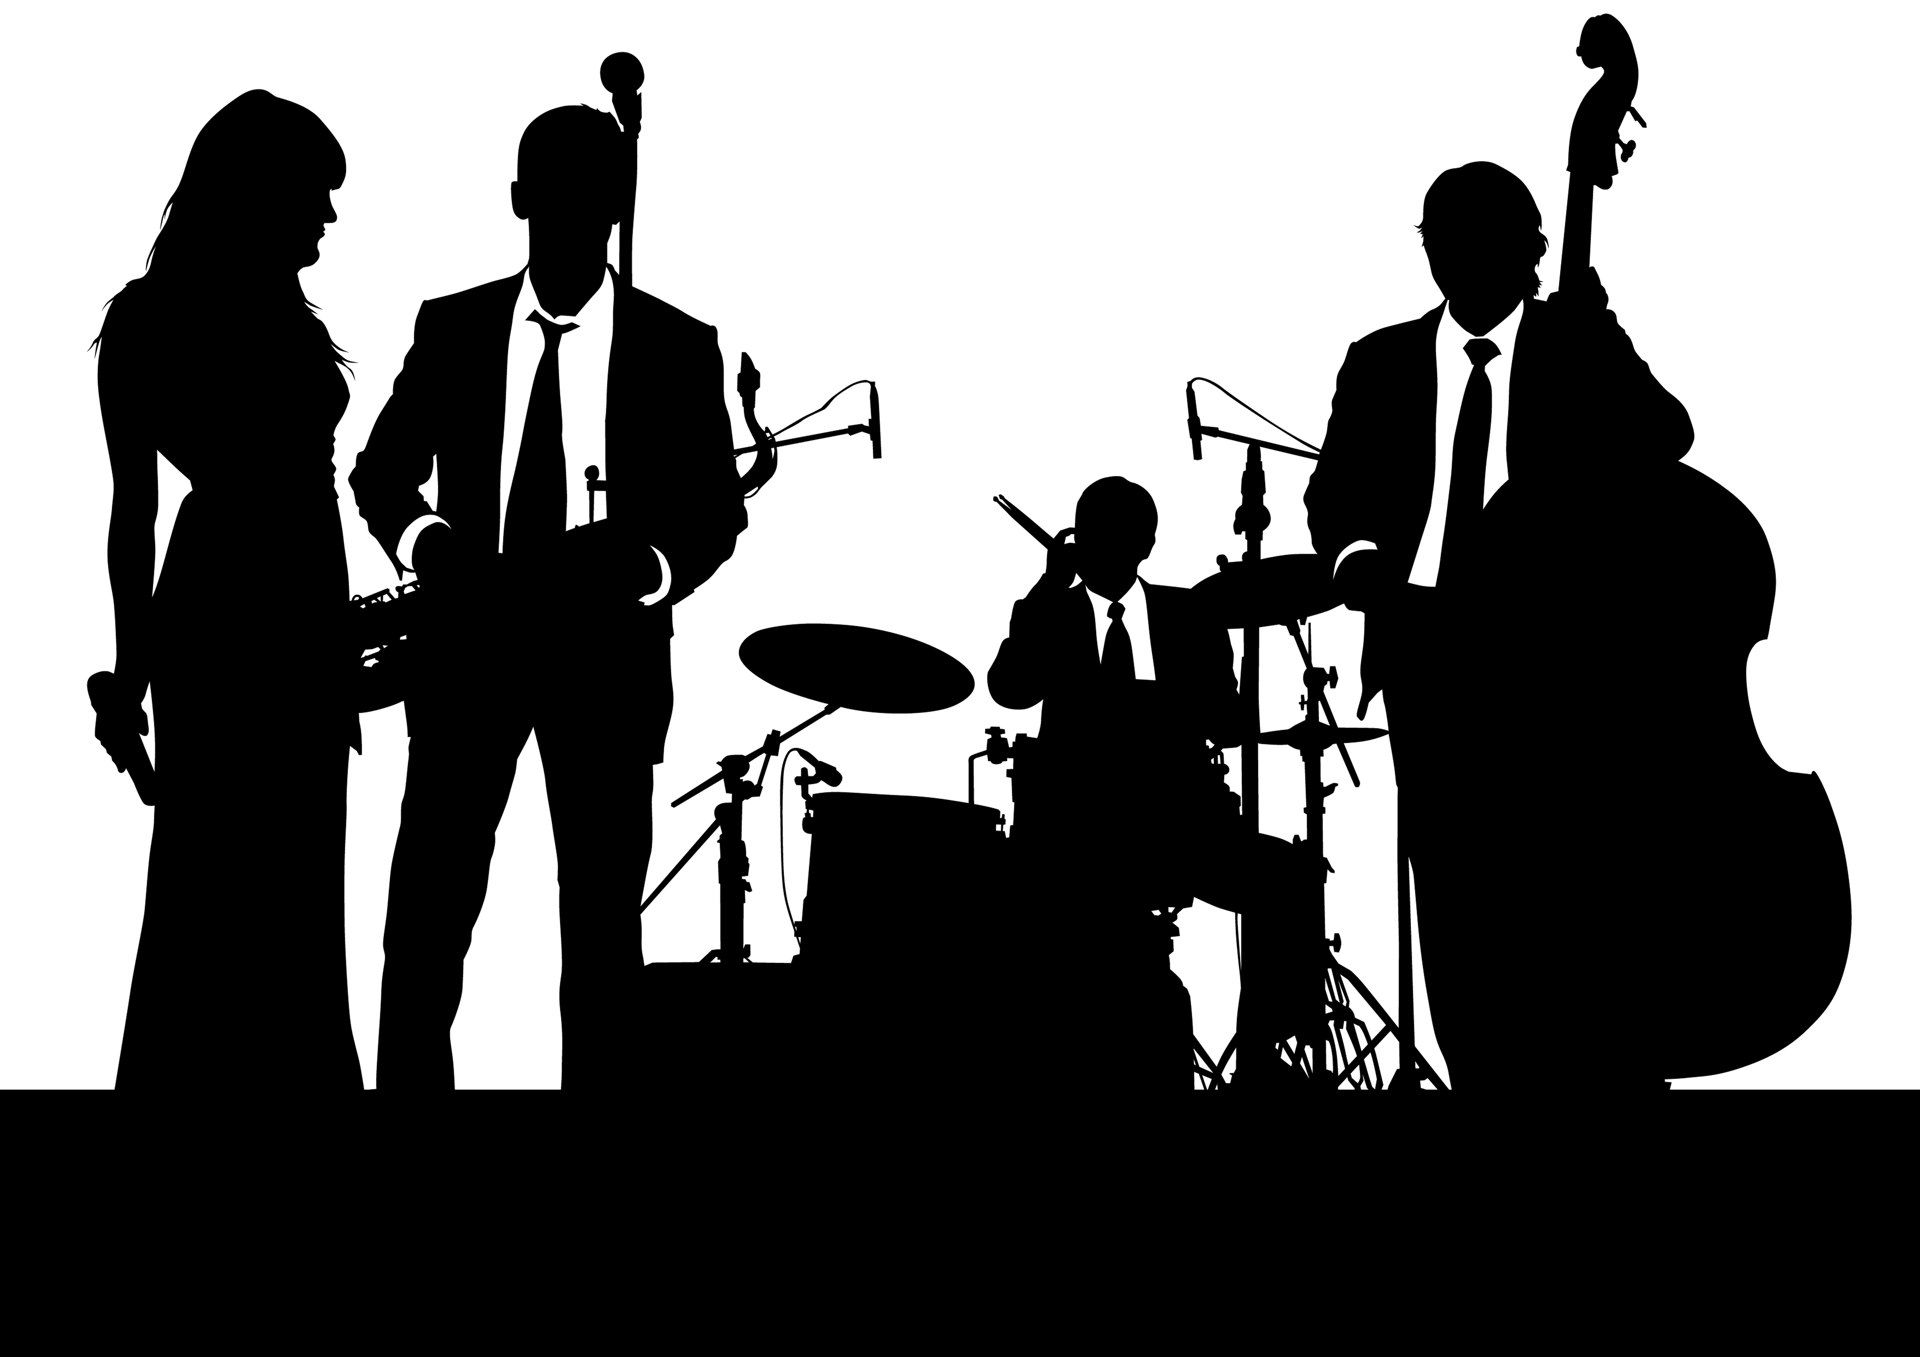 Live band clipart